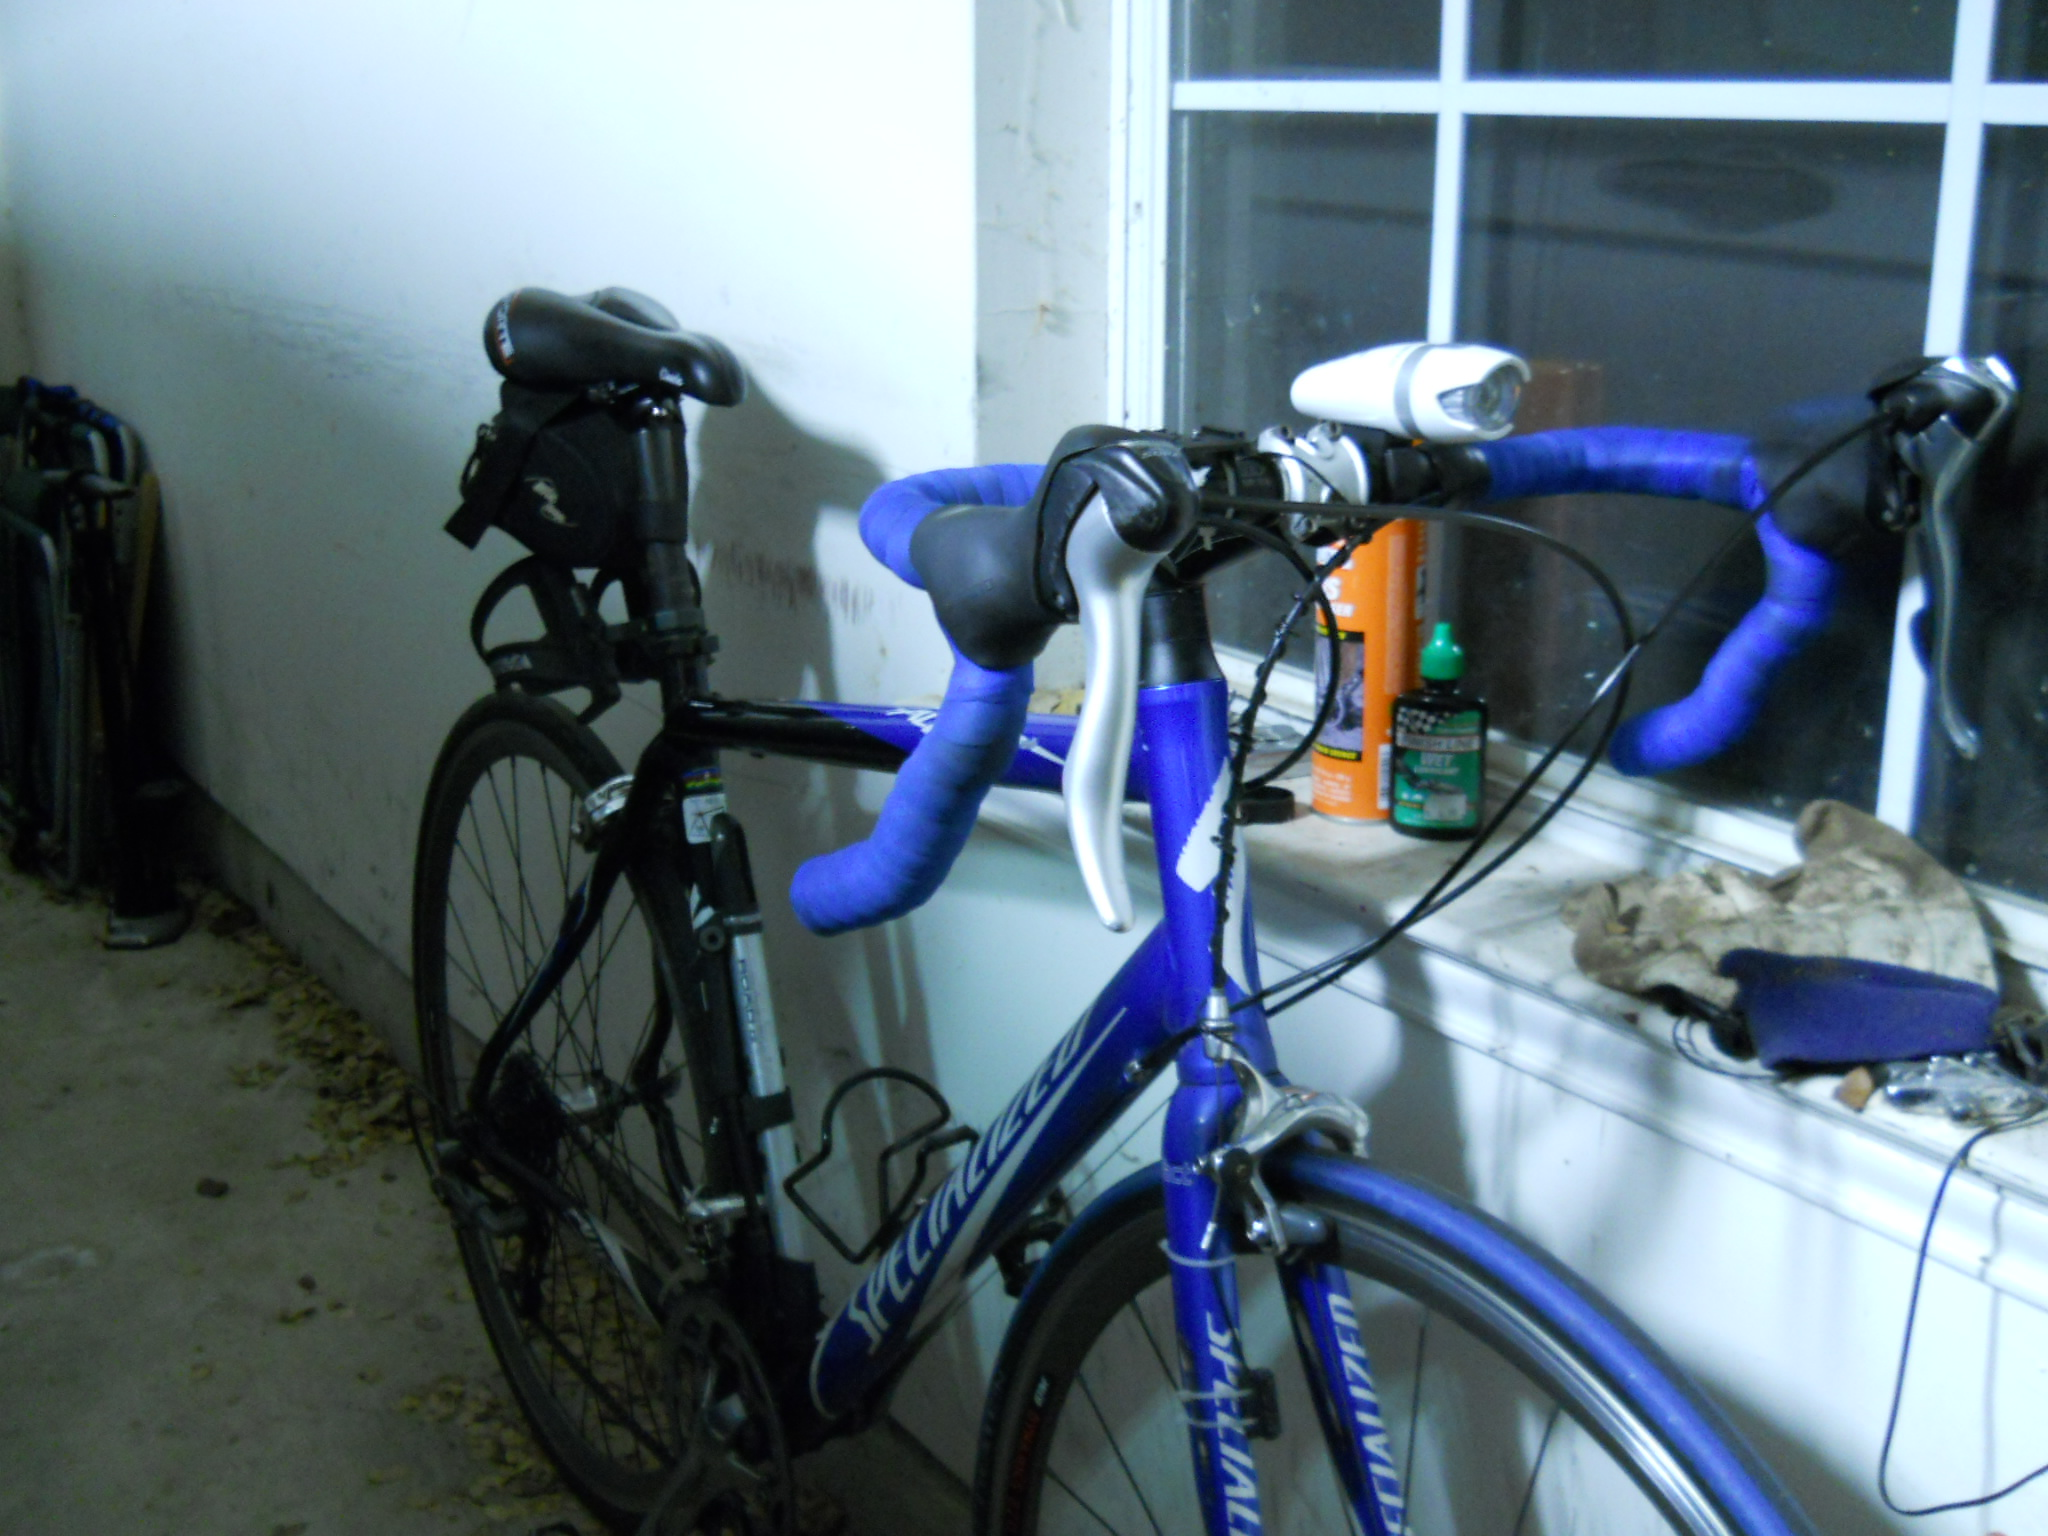 Even a quick snapshot in my cluttered garage shows the forward tilt to the saddle.